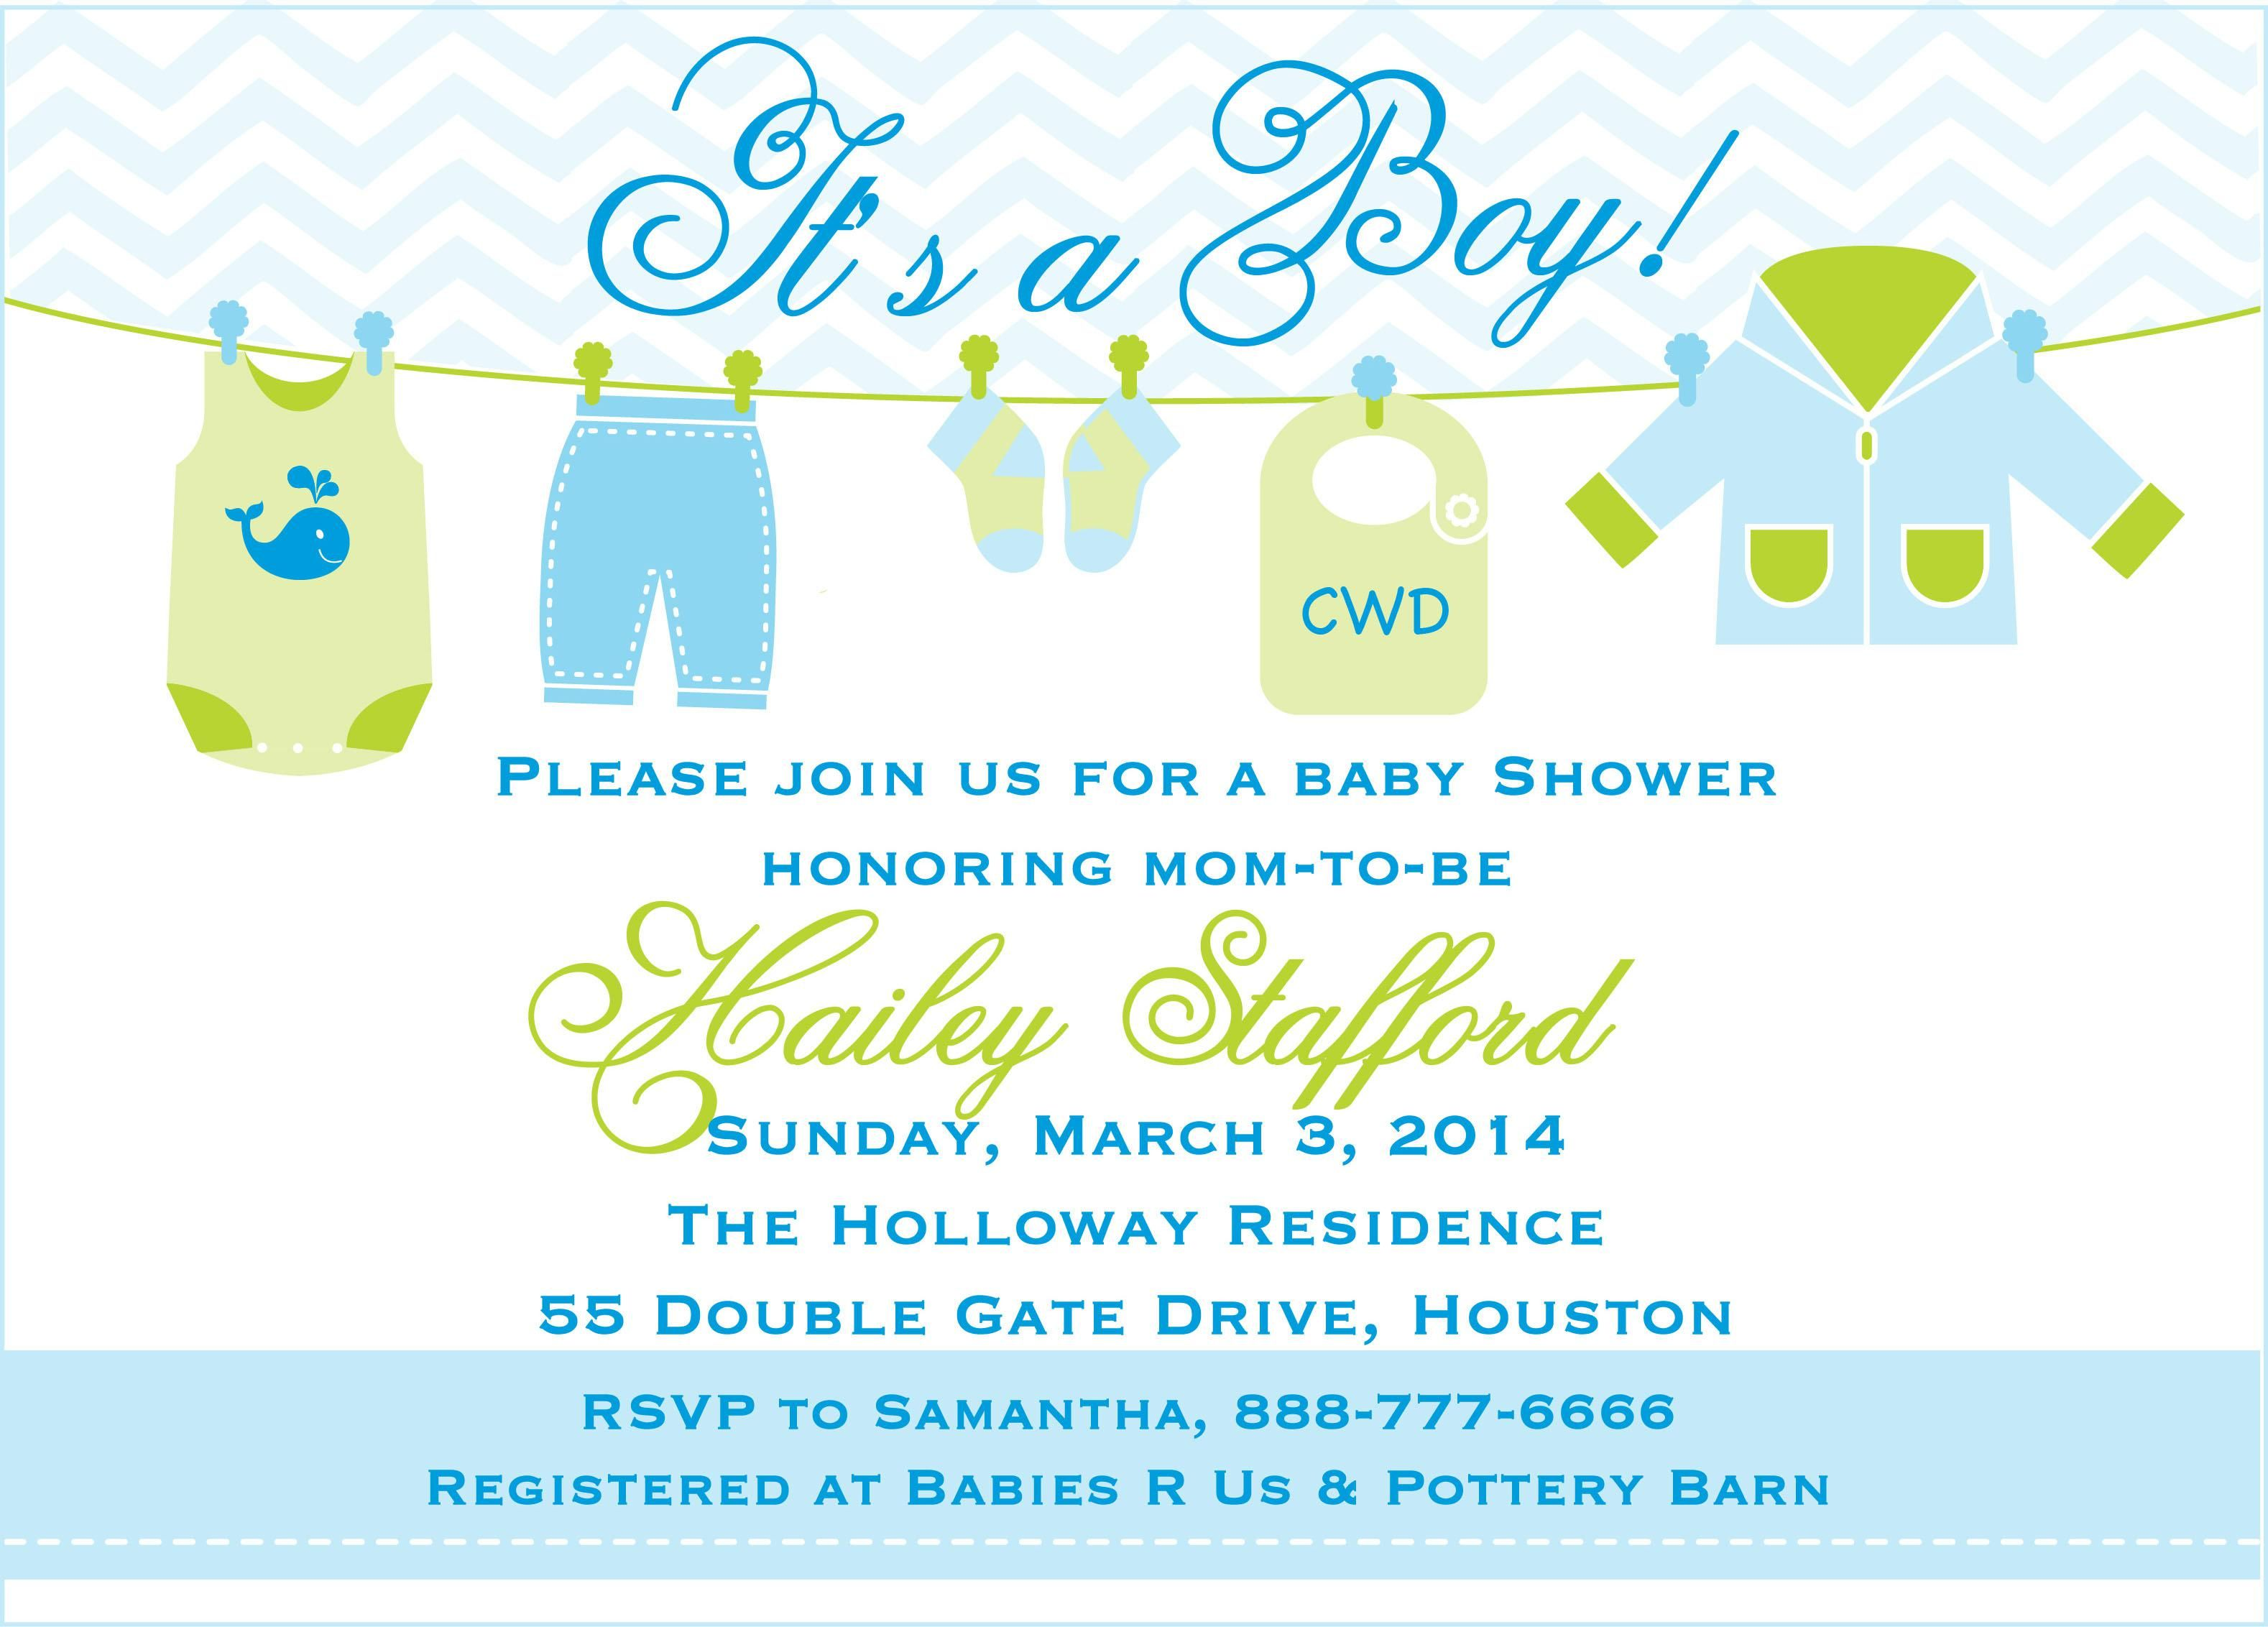 Baby Boy Shower Invitations Templates Free – Free Online Baby Shower Invitation Templates